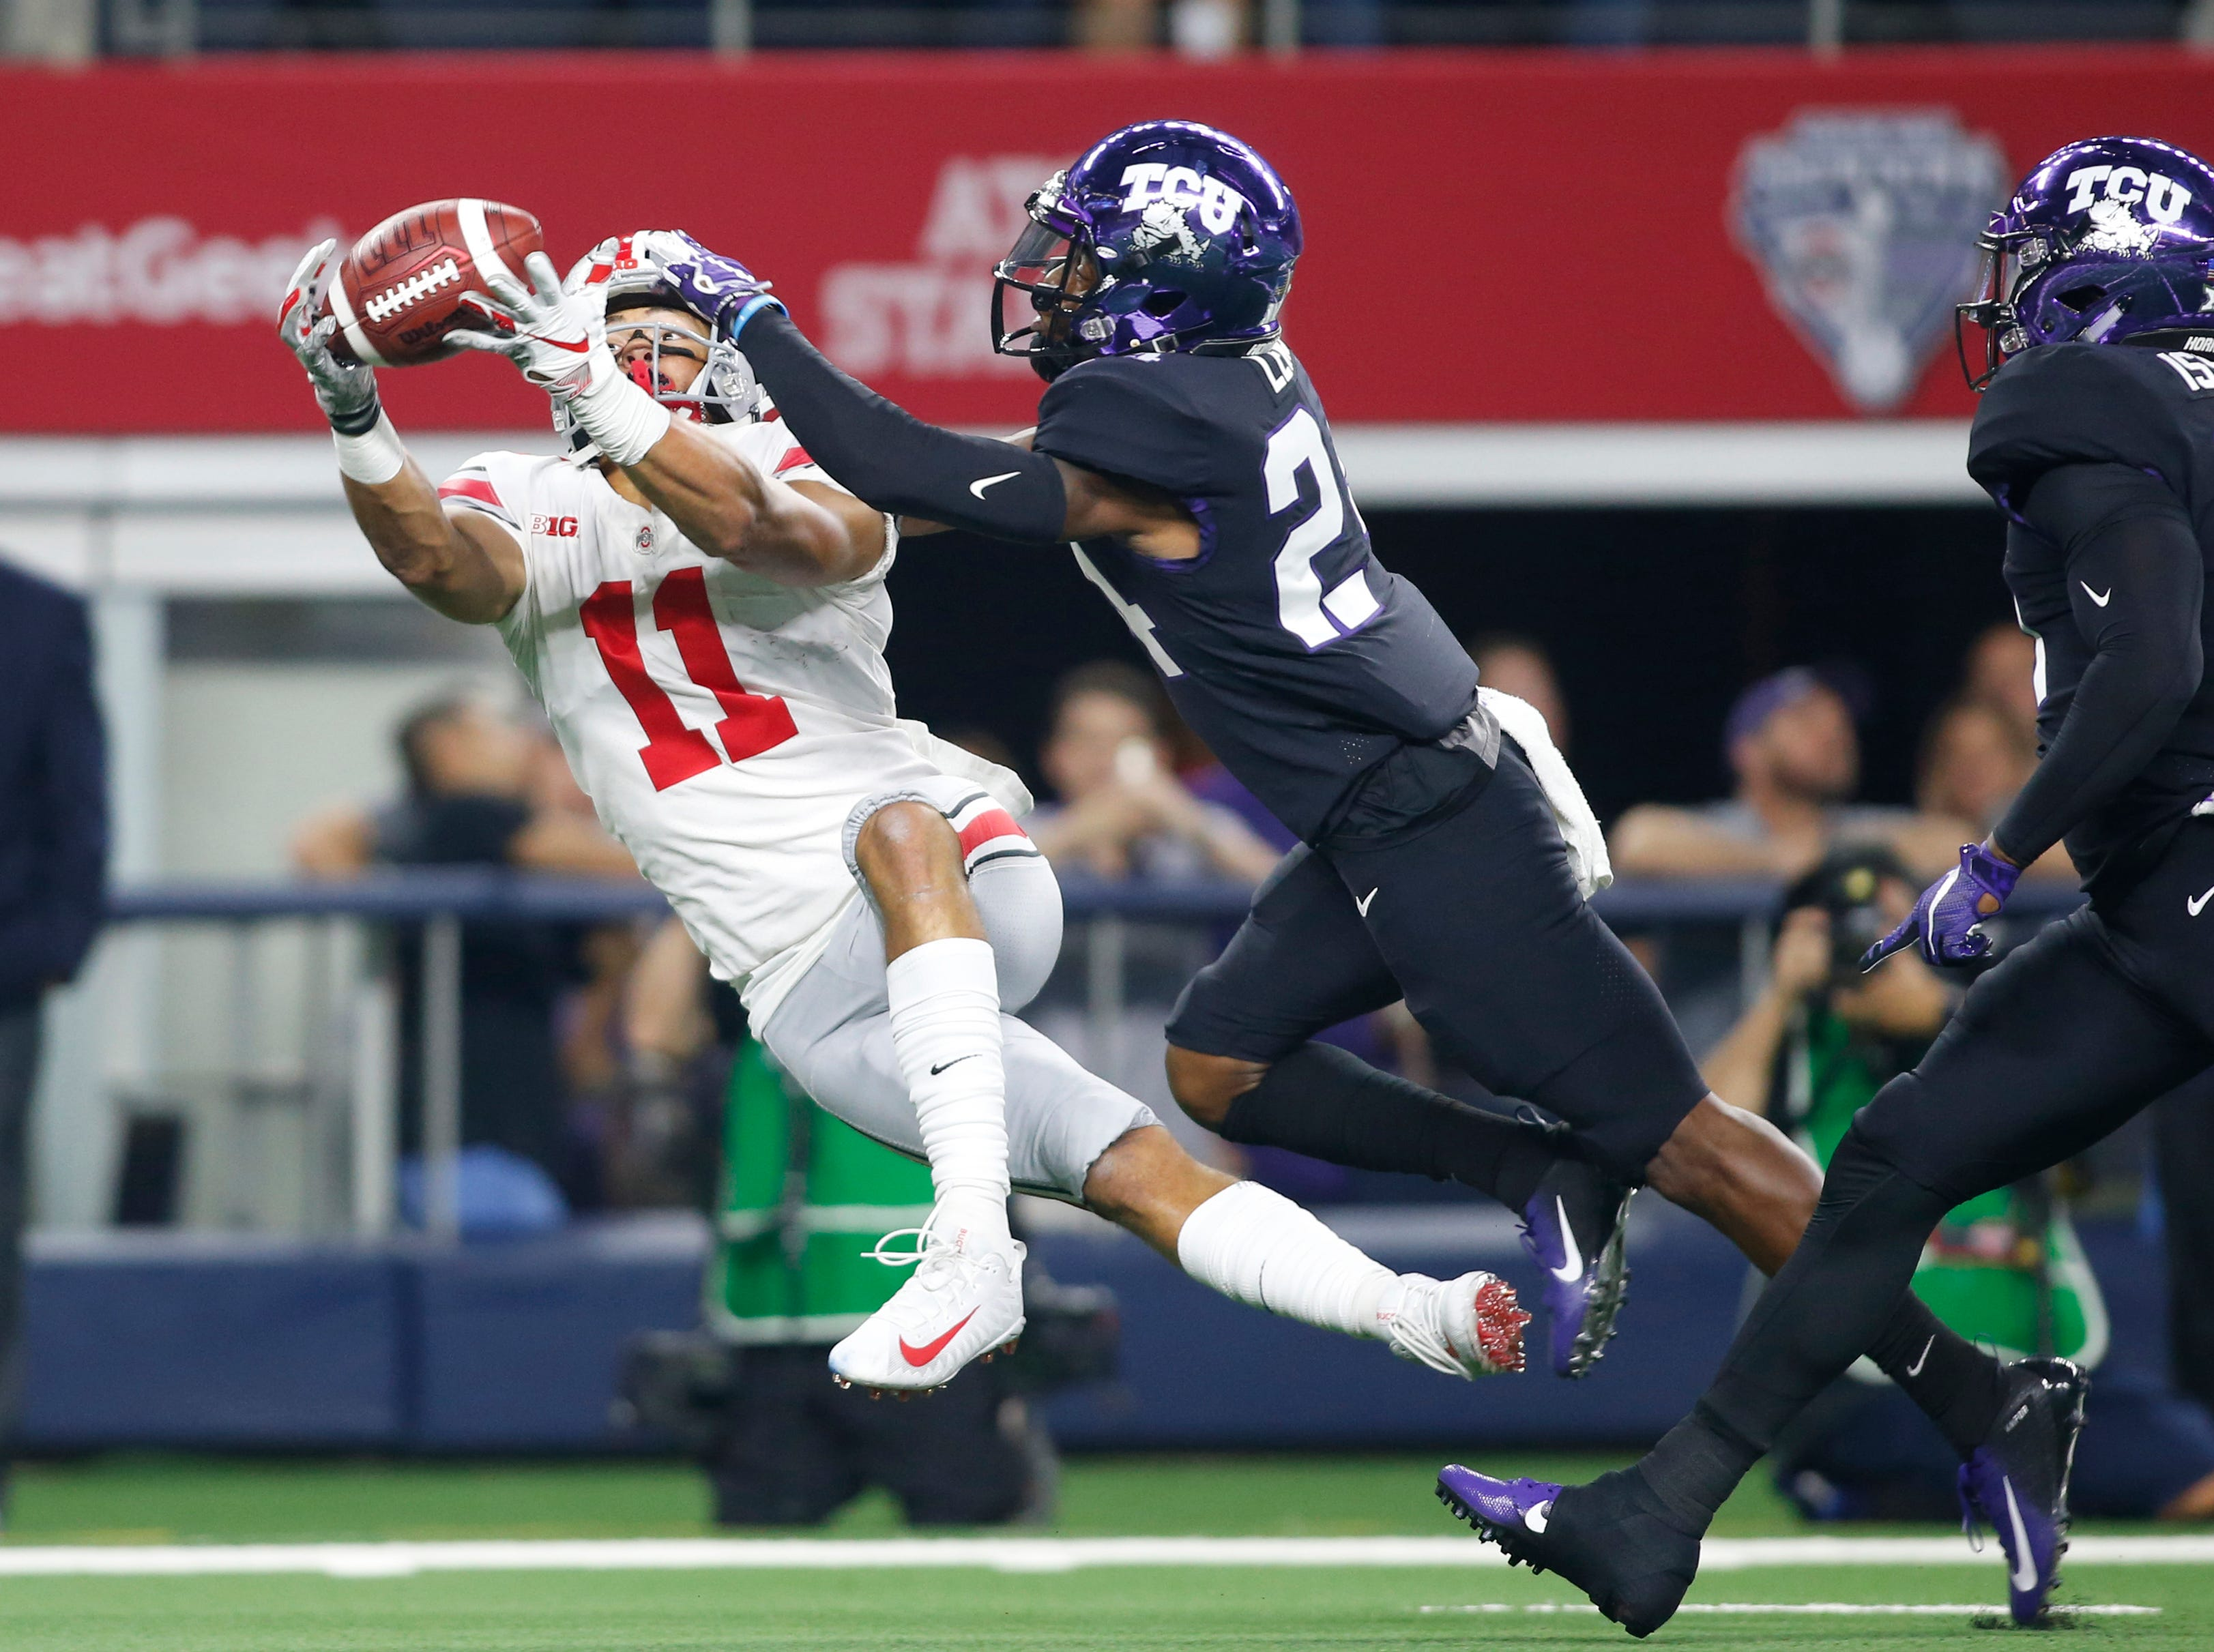 Ohio State Buckeyes wide receiver Austin Mack (11) catches a pass against TCU Horned Frogs cornerback Julius Lewis (24) in the first quarter at AT&T Stadium.